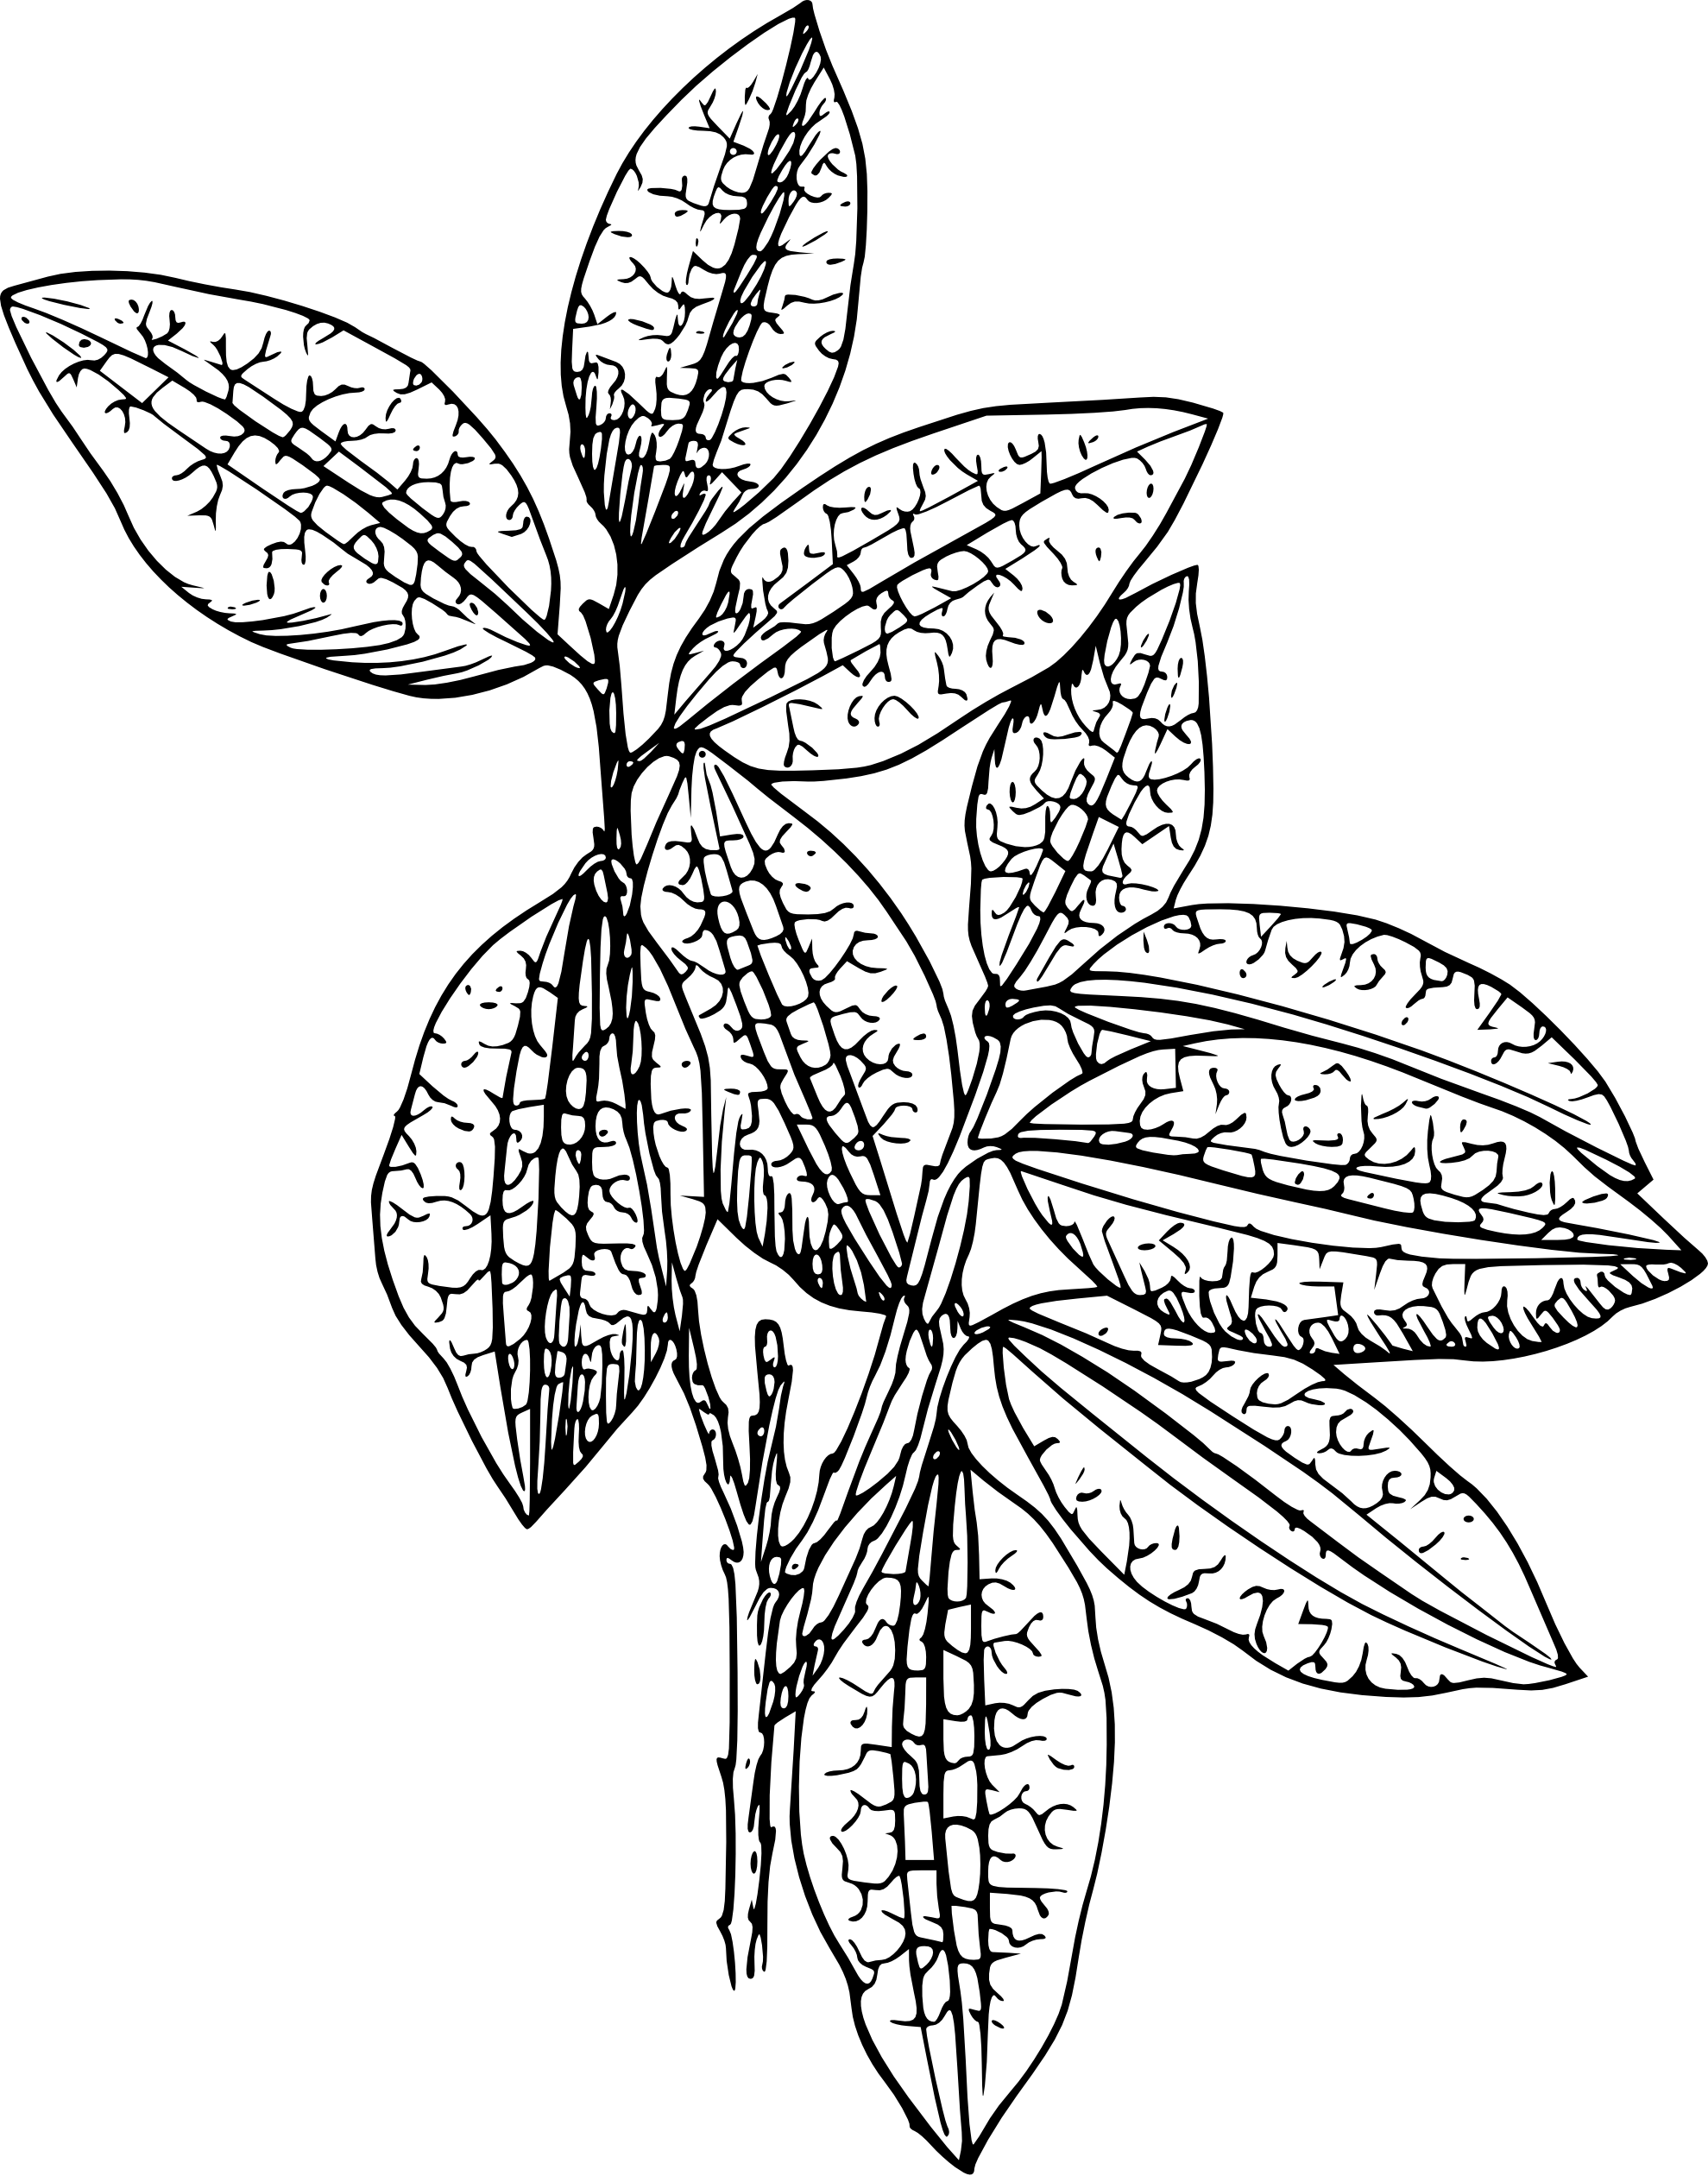 Flower Leaf Line Drawing : Plant clipart black and white panda free